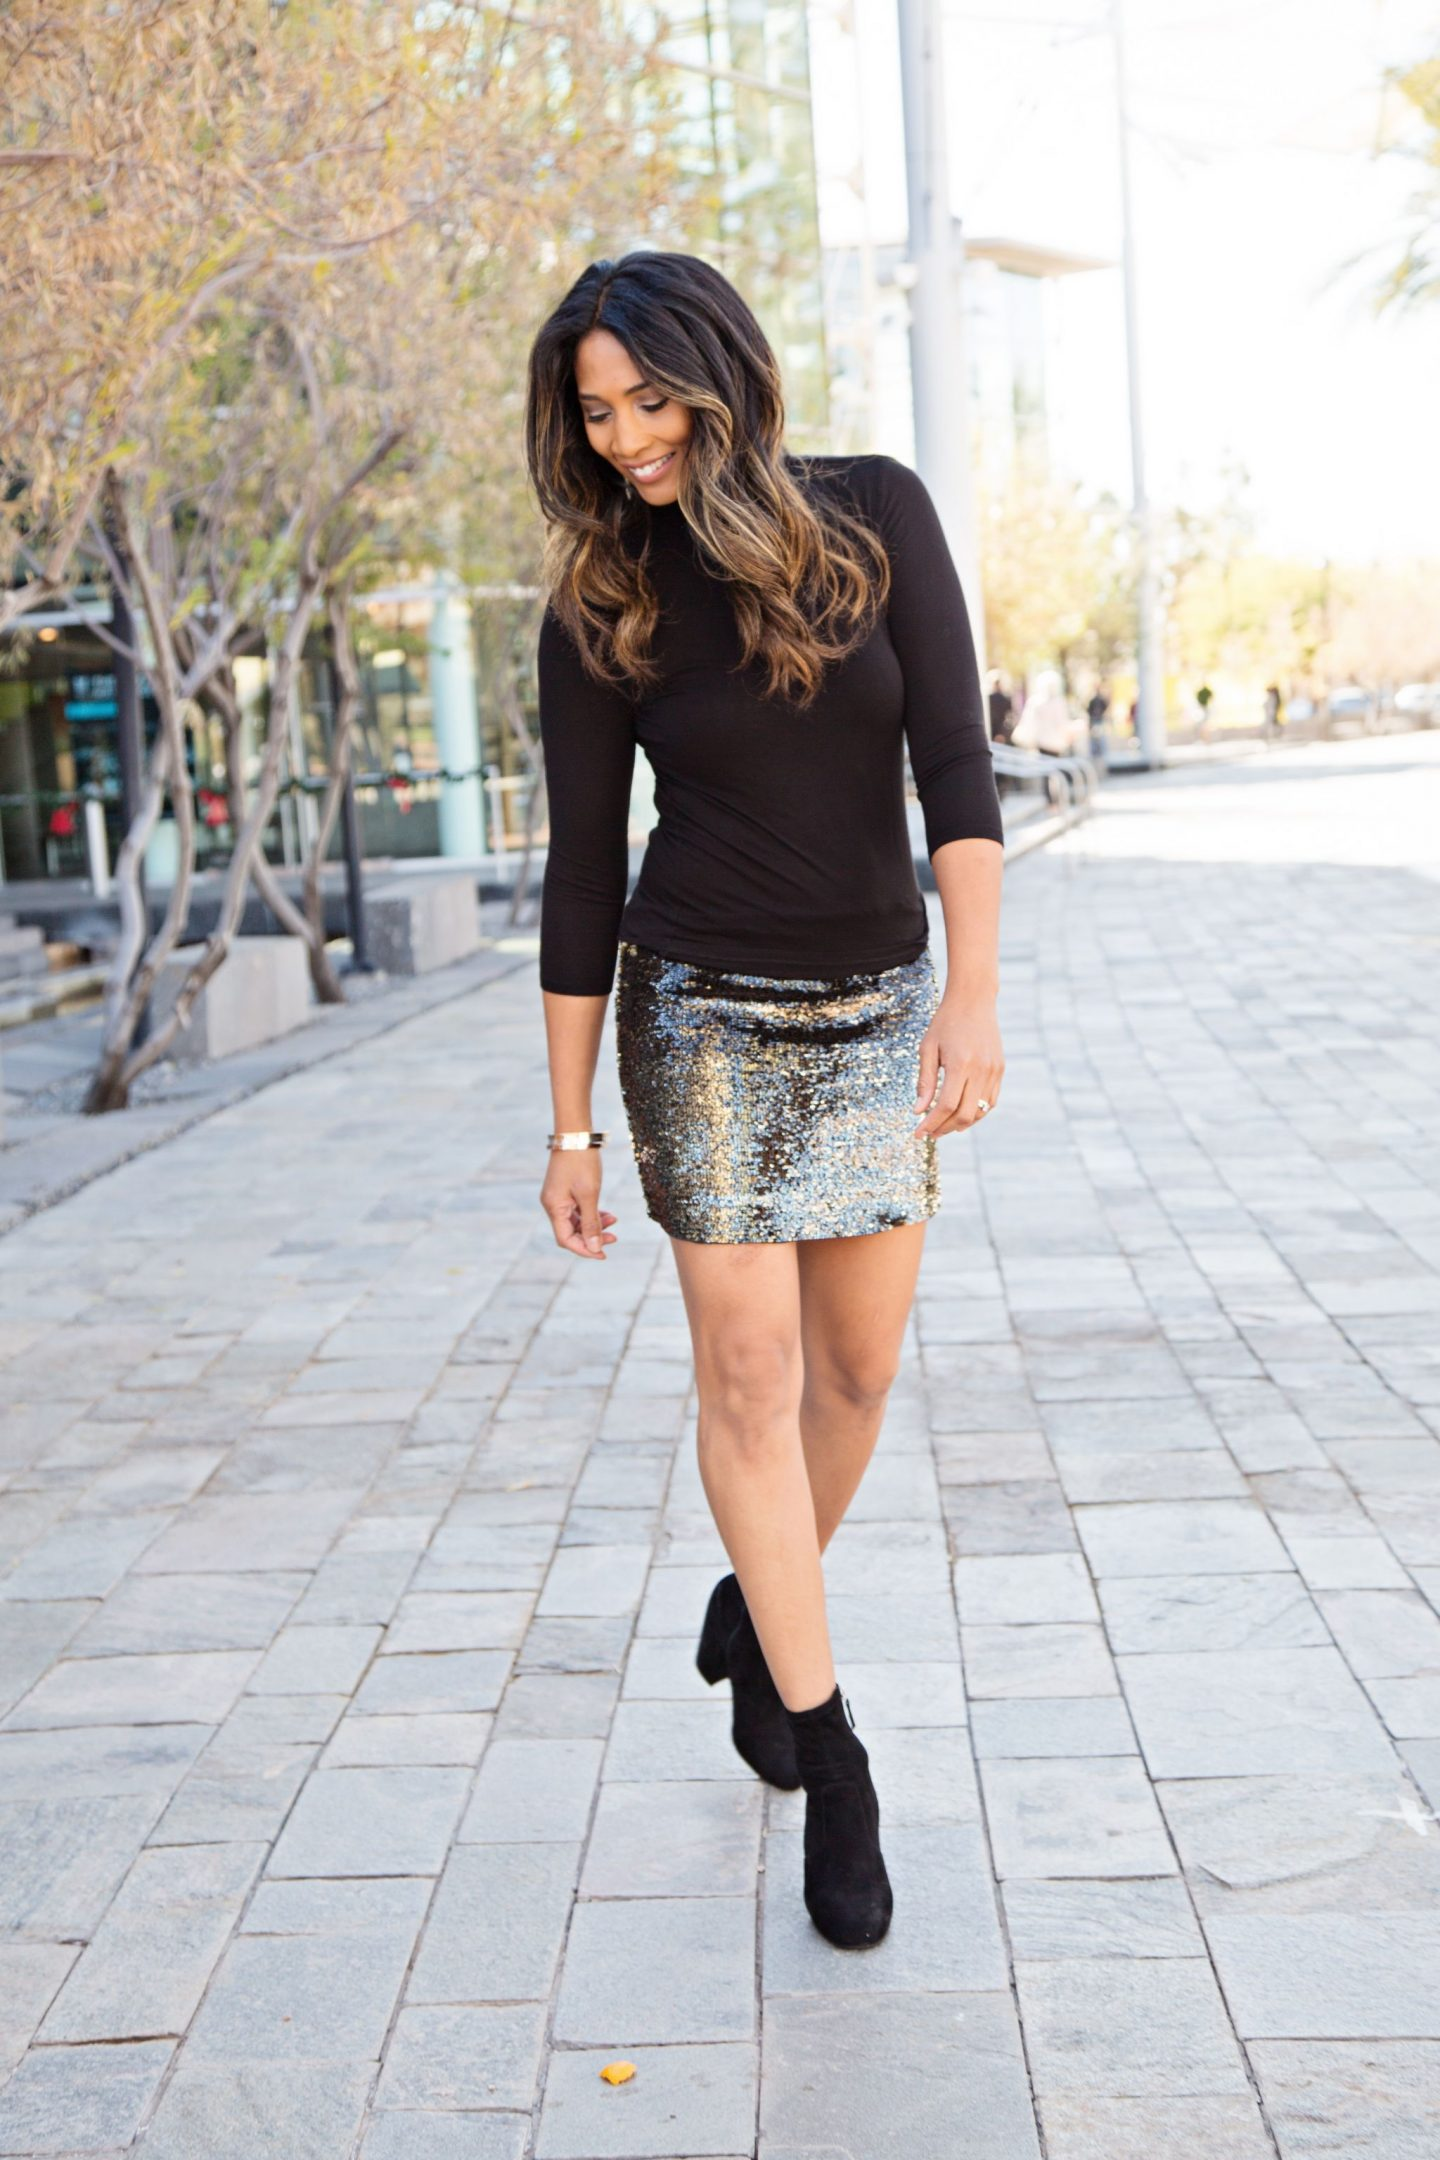 NEW YEARS OUTFIT, WINTER FASHION, WHAT TO WEAR, PARTY OUTFIT, FASHION INSPO, SEQUIN SKIRTS, ARIZONA BLOGGER, BLOGGER STYLE